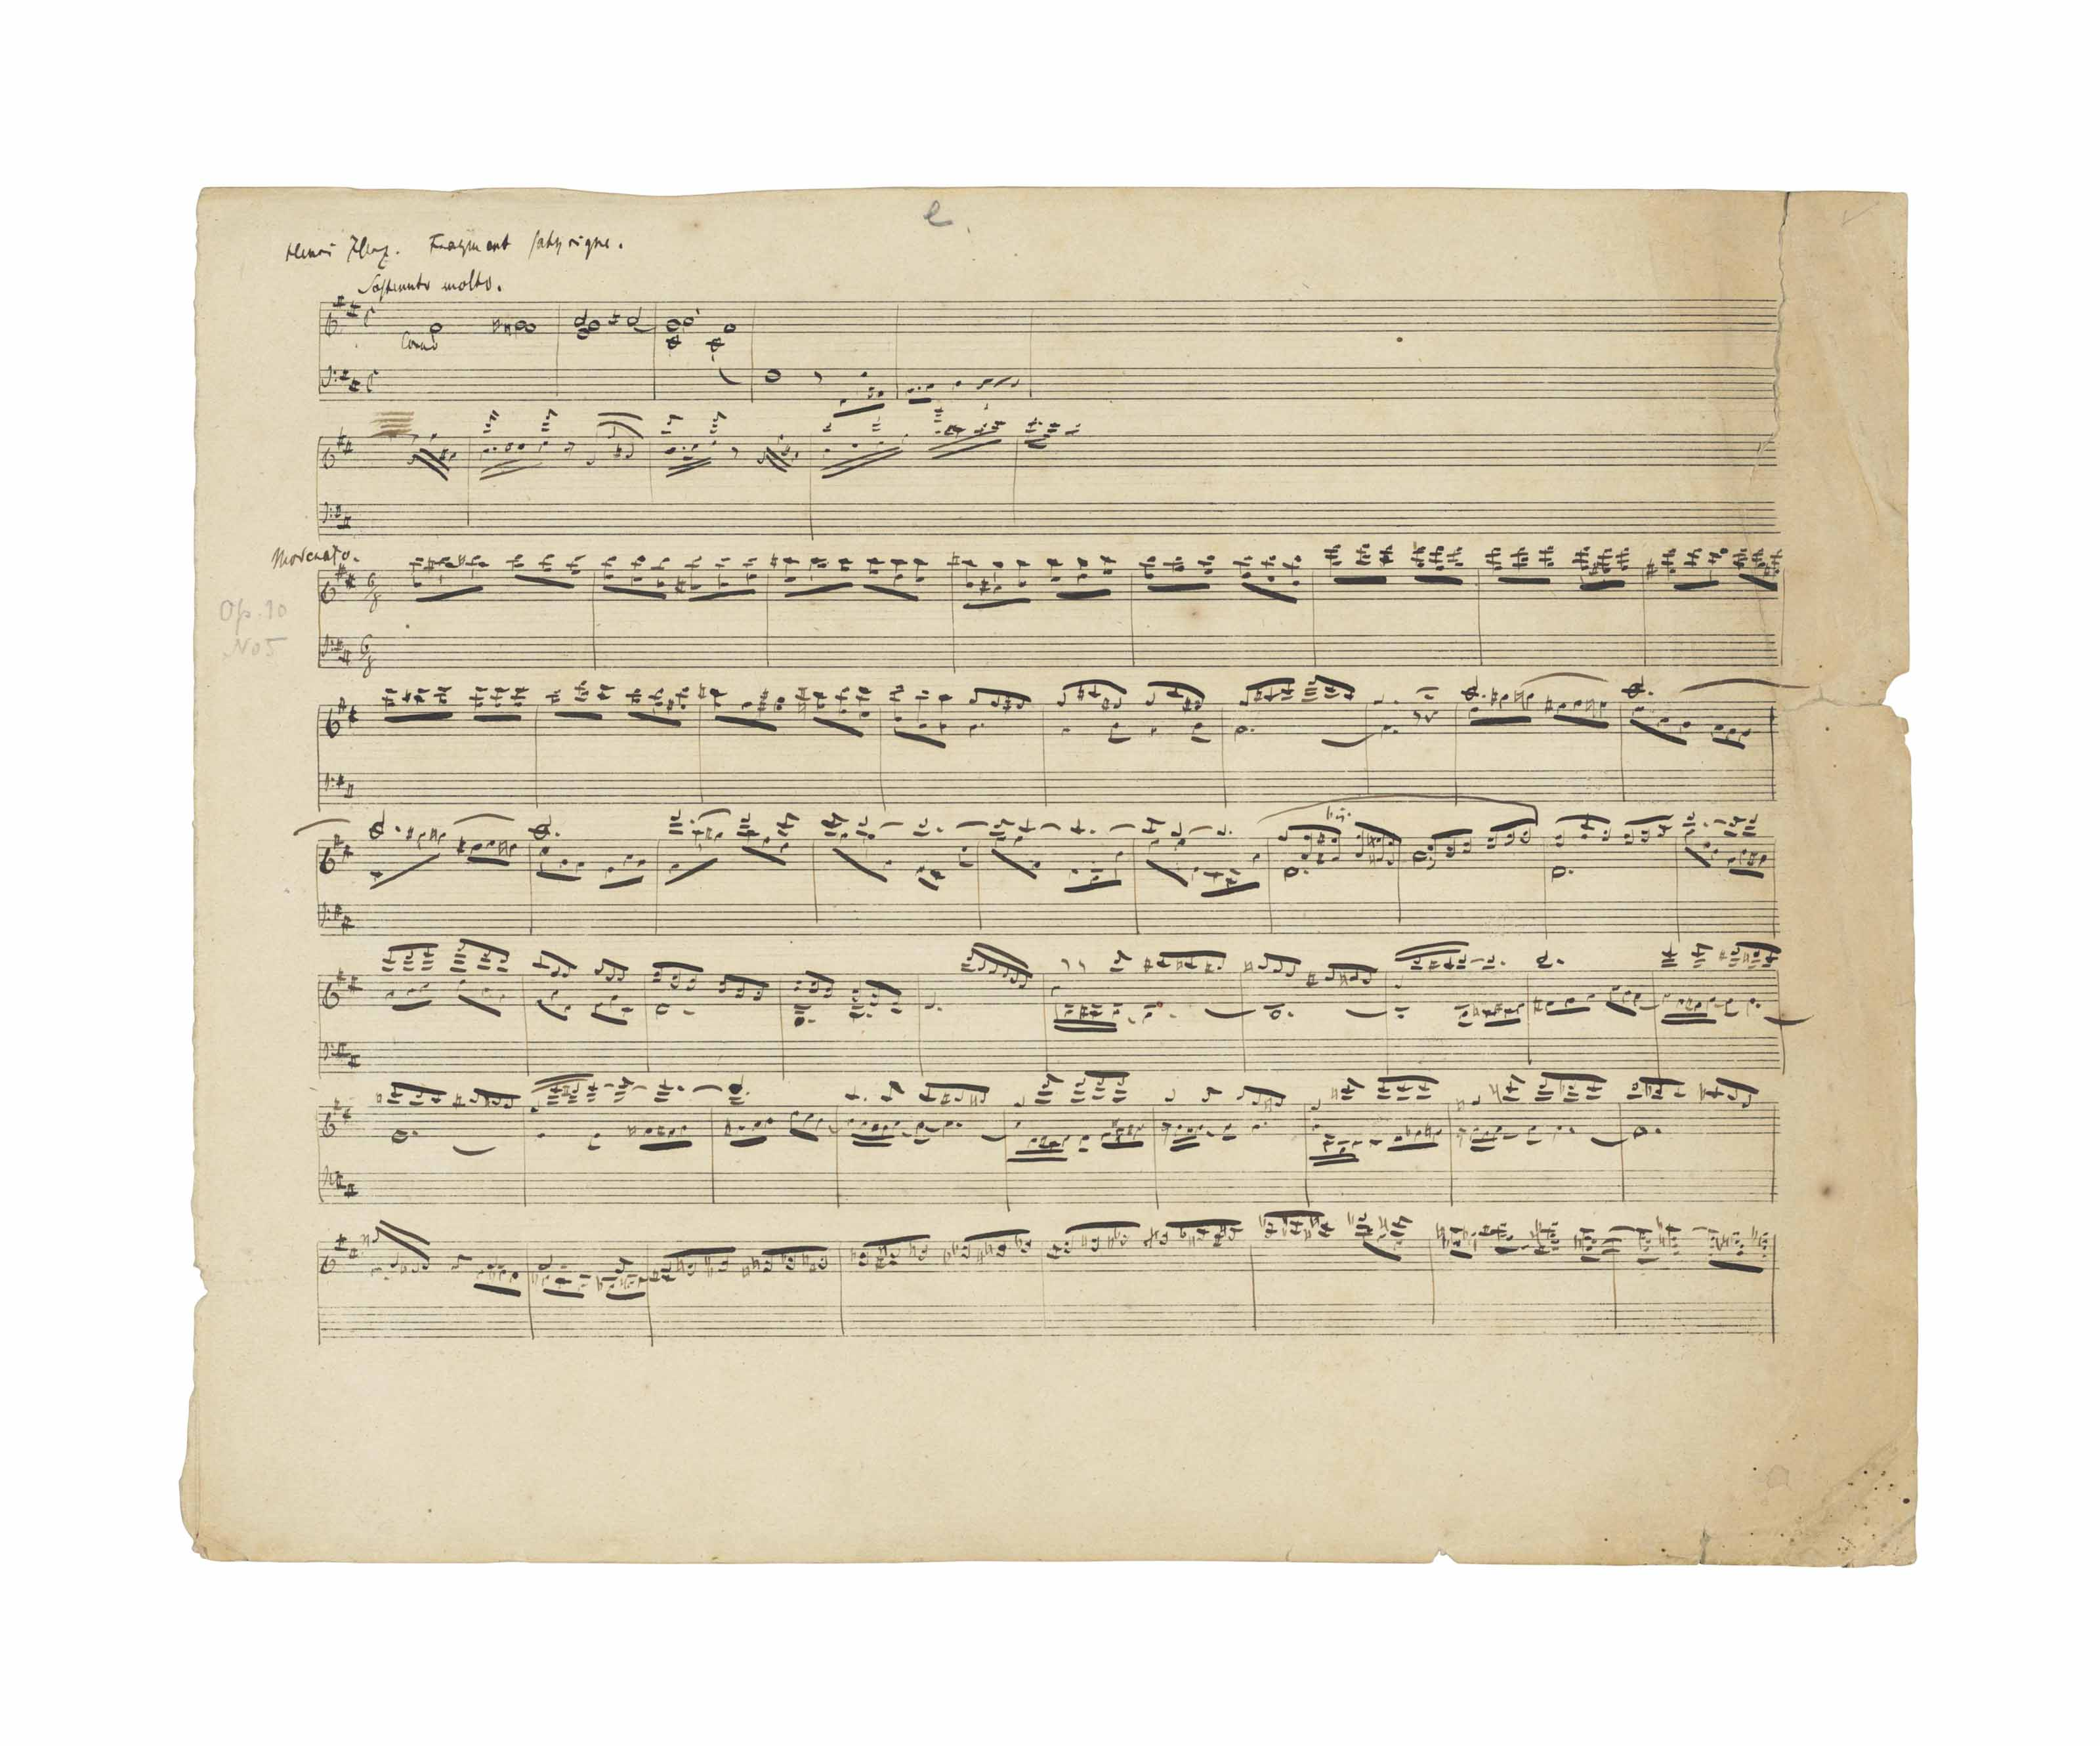 SCHUMANN, Robert (1810-1856). Autograph music manuscript, sketchleaf for three works for piano, comprising on the recto 9 bars, marked 'Sostenuto molto', for the Fantasie satyrique nach Henri Herz, here titled 'Henri Herz. Fragment satyrique' (McCorkle Anhang F18) and a substantial draft, comprising 54 bars, marked ''Moderato', for Op.10 no.5, the Konzert-Etüden nach Capricen von Paganini, and on the verso three passages, comprising 56 bars, the first section marked 'Allegro', for Op.5 no.11, the Impromptus über ein Thema von Clara Wieck, n.d. [early 1833], on 16-stave paper, 2 pages, oblong folio (267 x 335mm), (pencil annotations, minor spotting and browning, soiling and wear to right margin, more marked to upper corner, with two tears, 25mm and 55mm), window-mounted, framed and glazed. McCorkle Verkverzeichniss: op.5 source 1e; op.10 source 1c; Anhang F18, Autograph a. Provenance: L. von Vietinghoff-Scheel, Berlin – Gise